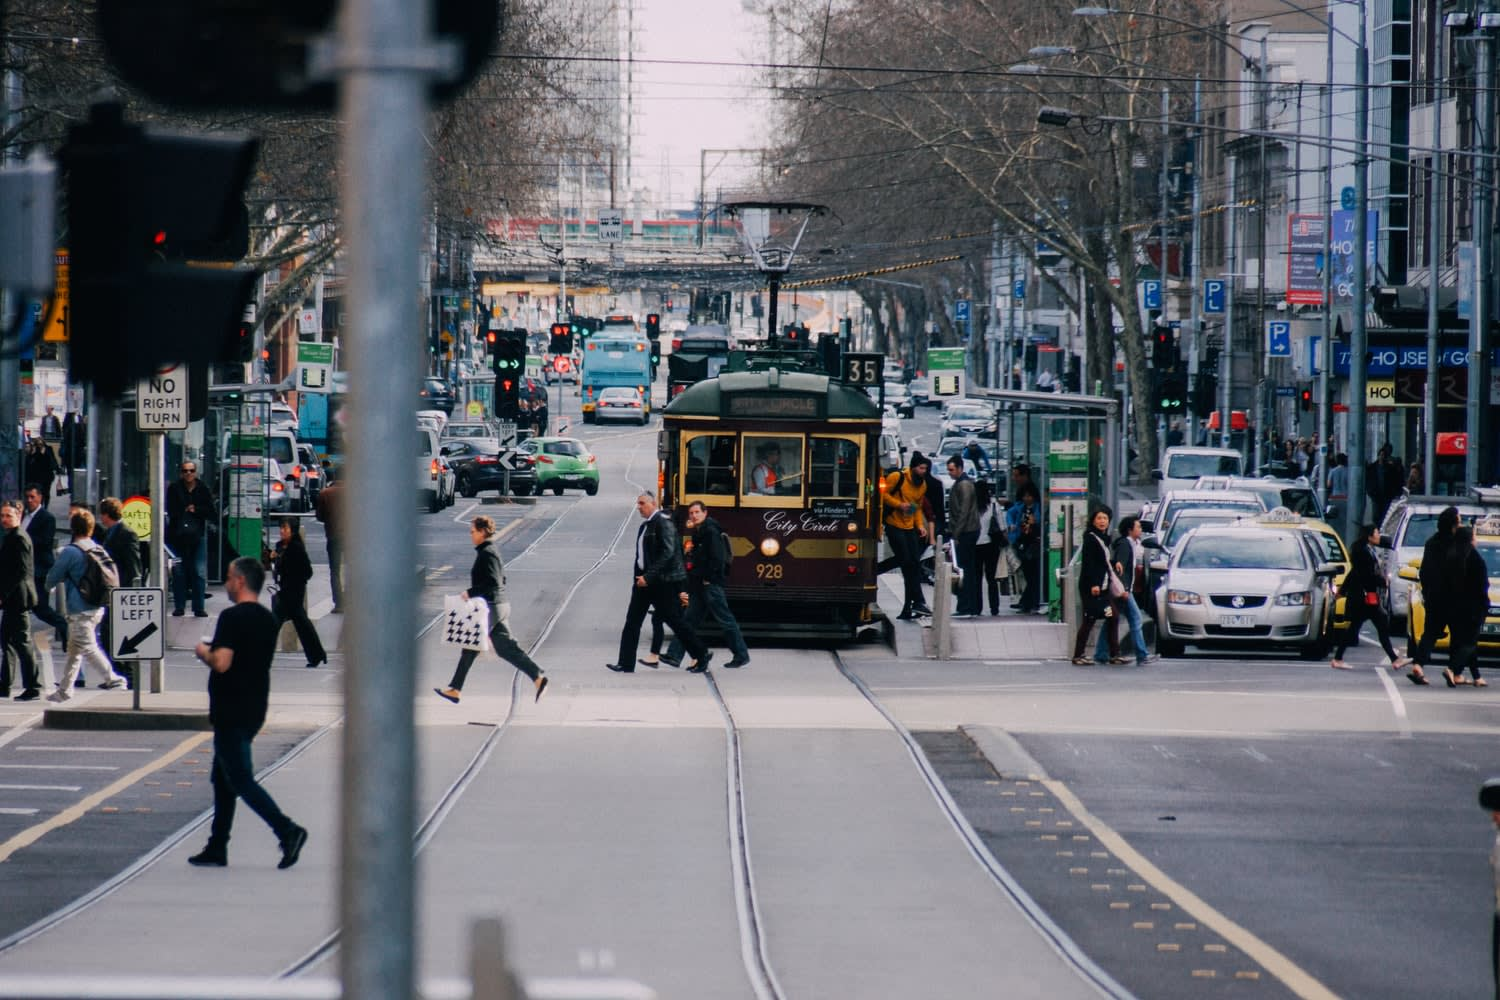 Melbourne's revised Transport Strategy 2030 aims to deliver $870 billion boost to economy